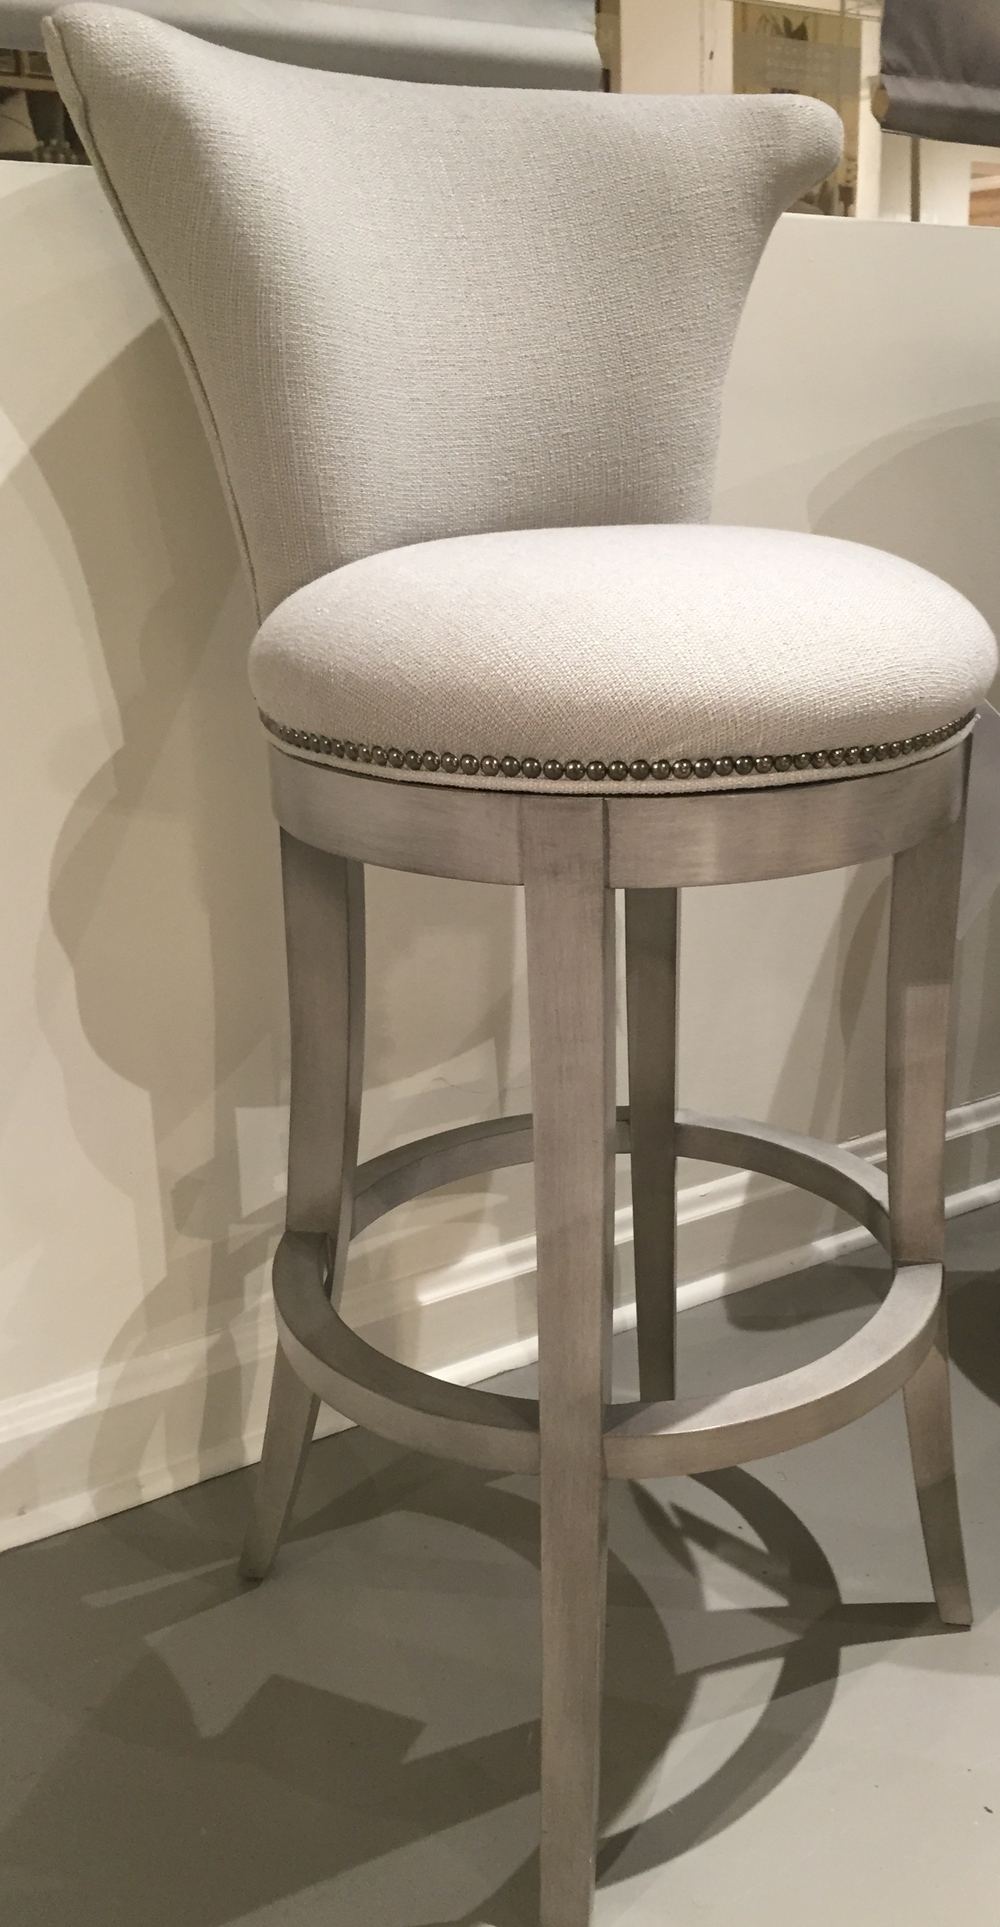 Gorgeous bar stool!